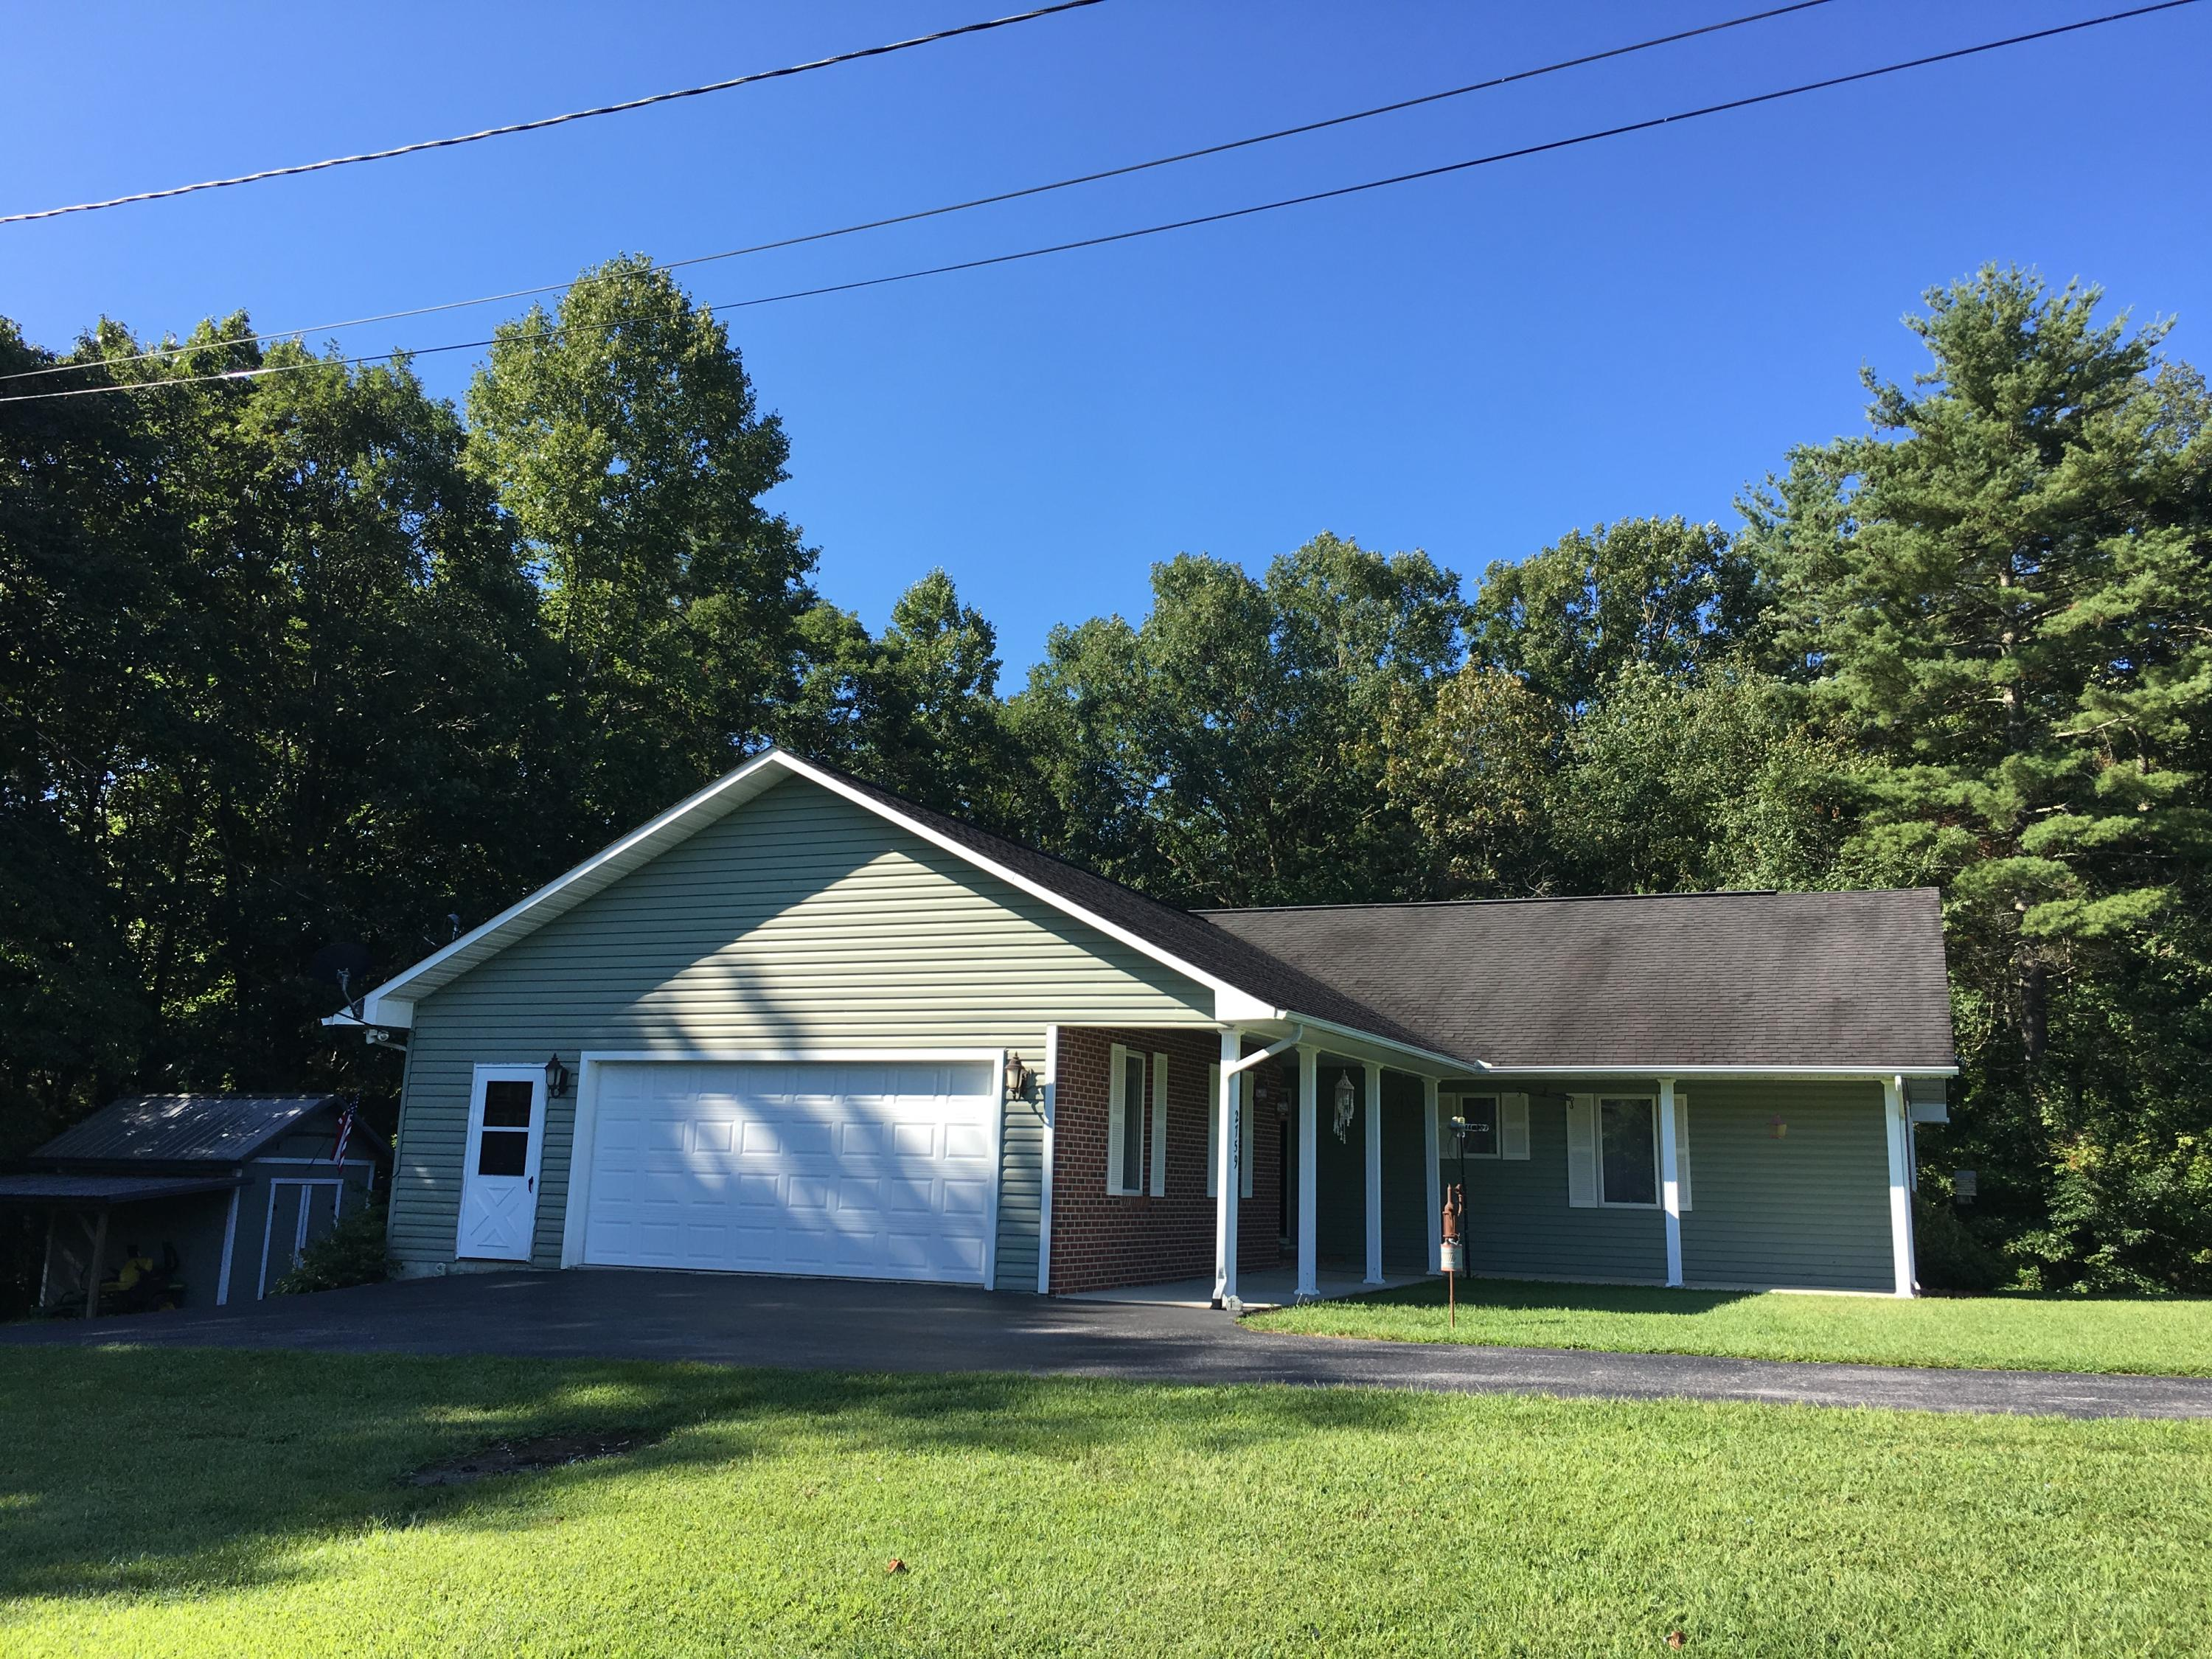 2759 Deer Lodge Hwy, Deer Lodge, TN 37726